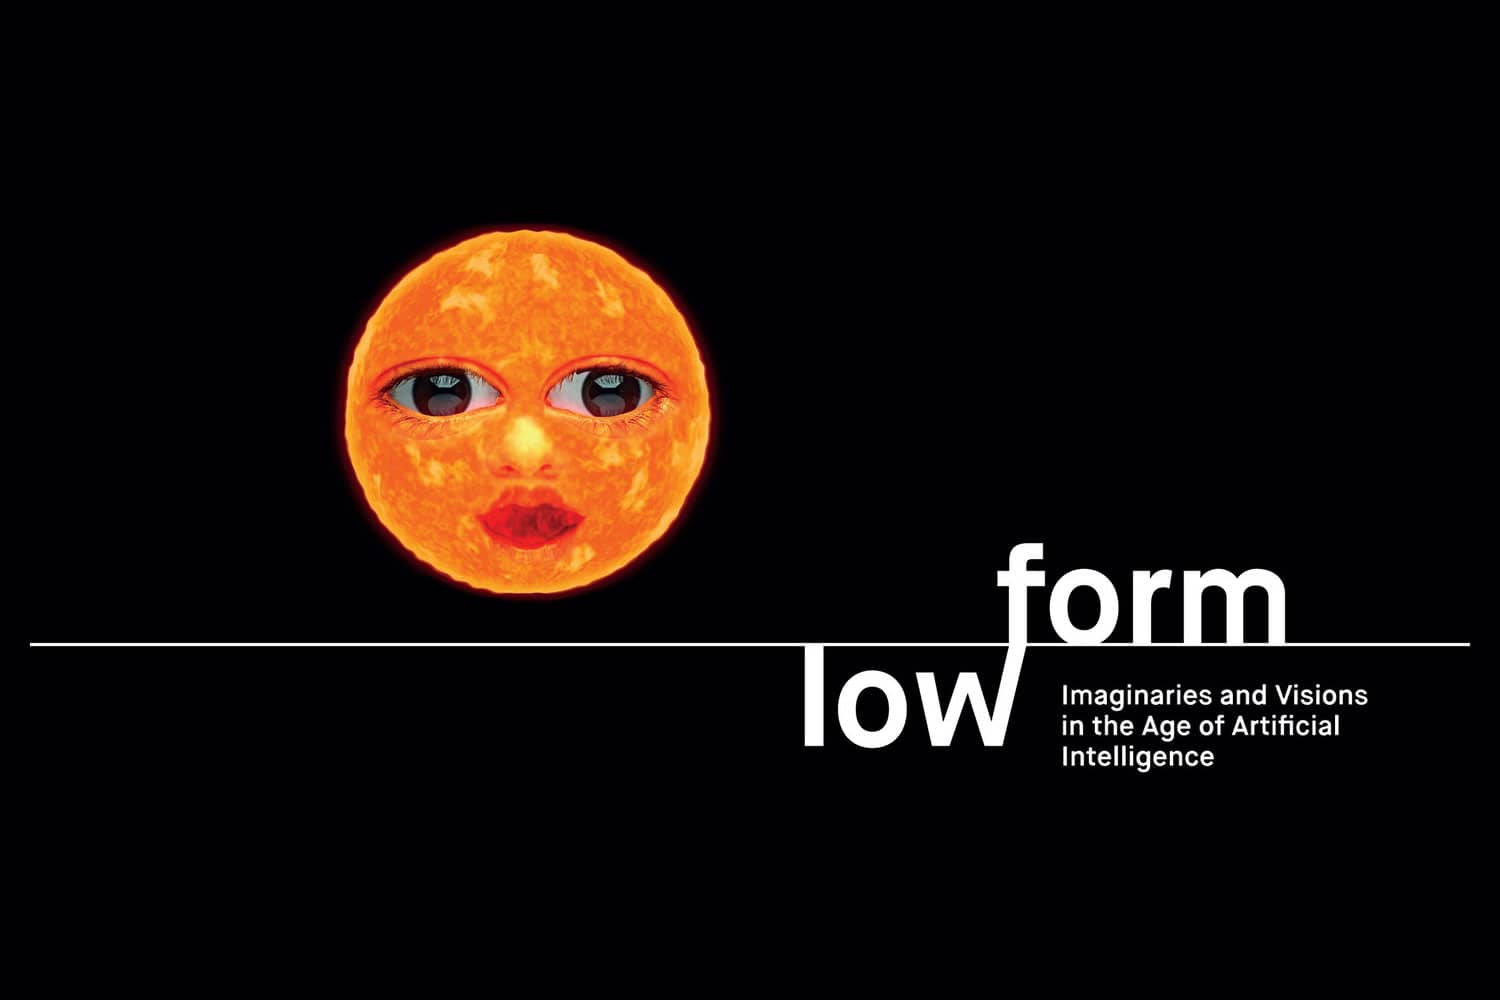 low form exhibition